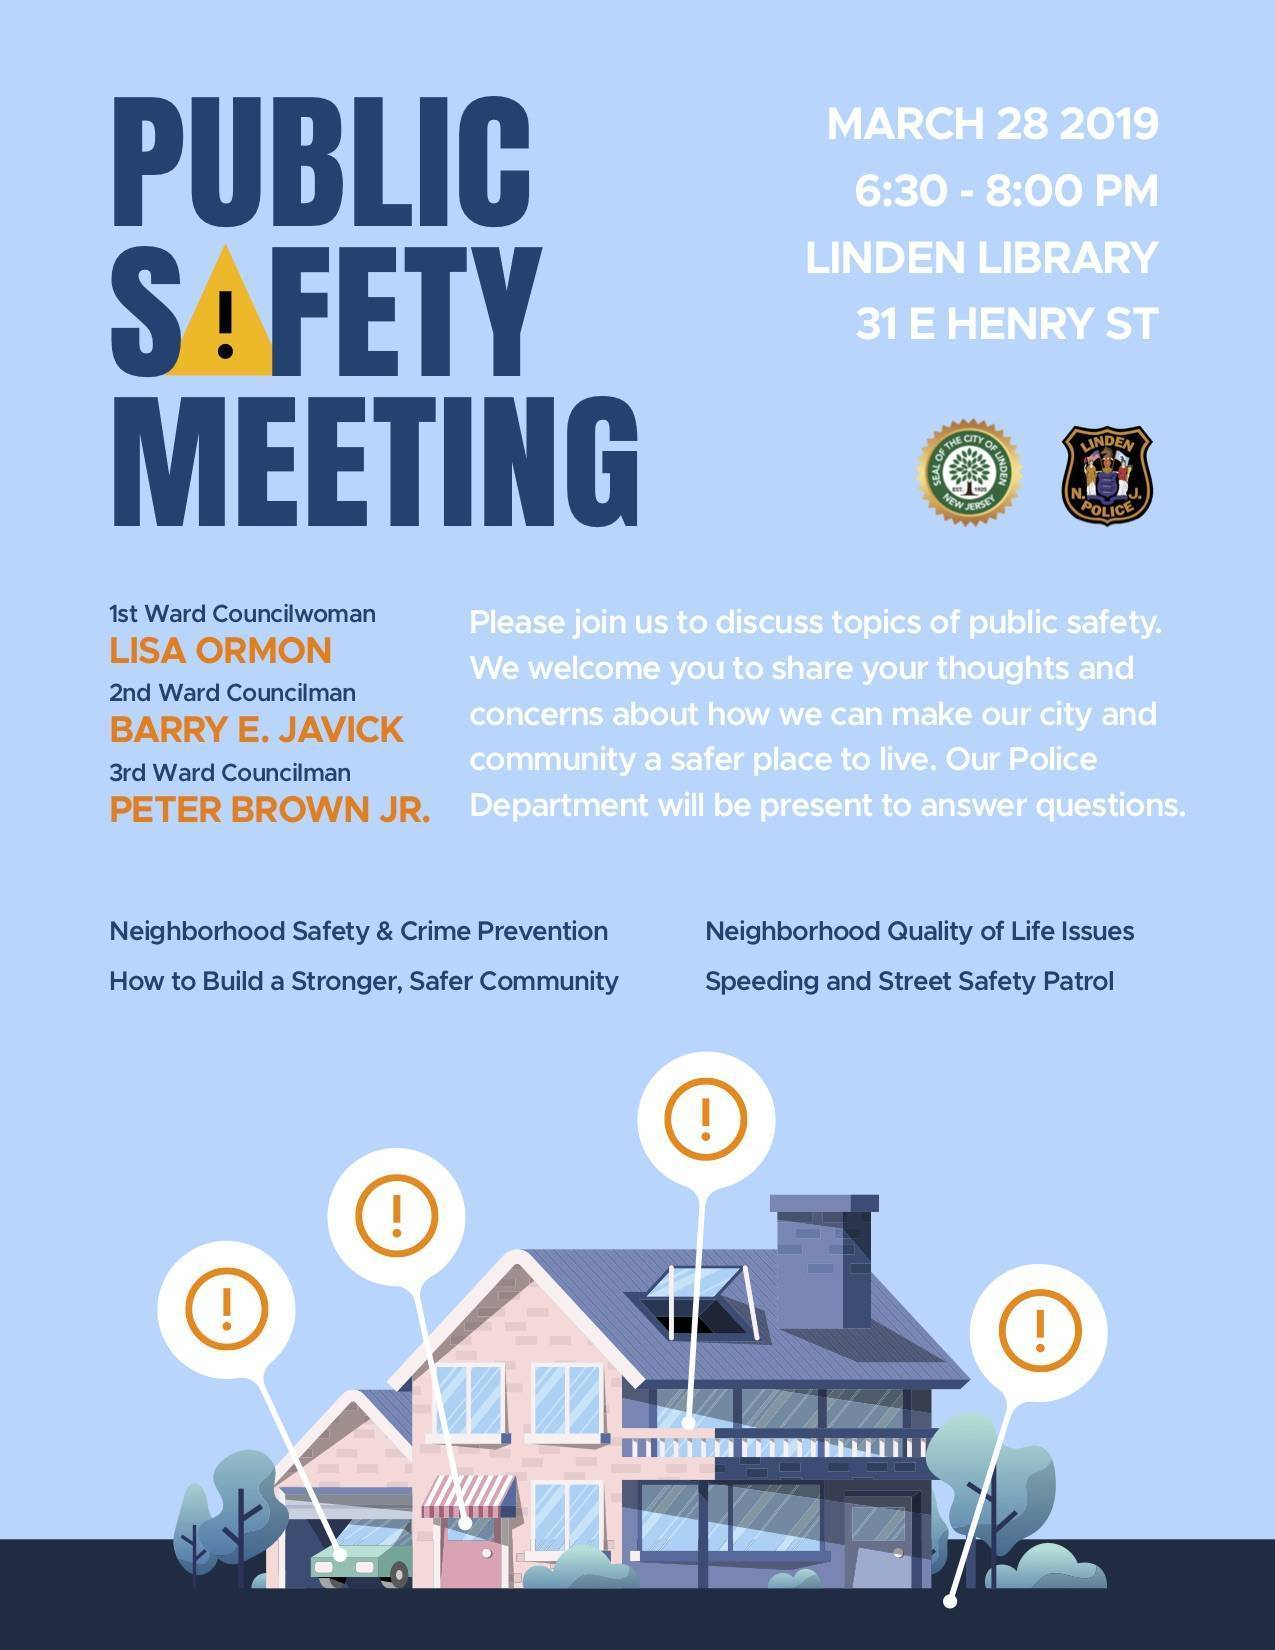 Public-Safety-Meeting-March2019.jpg